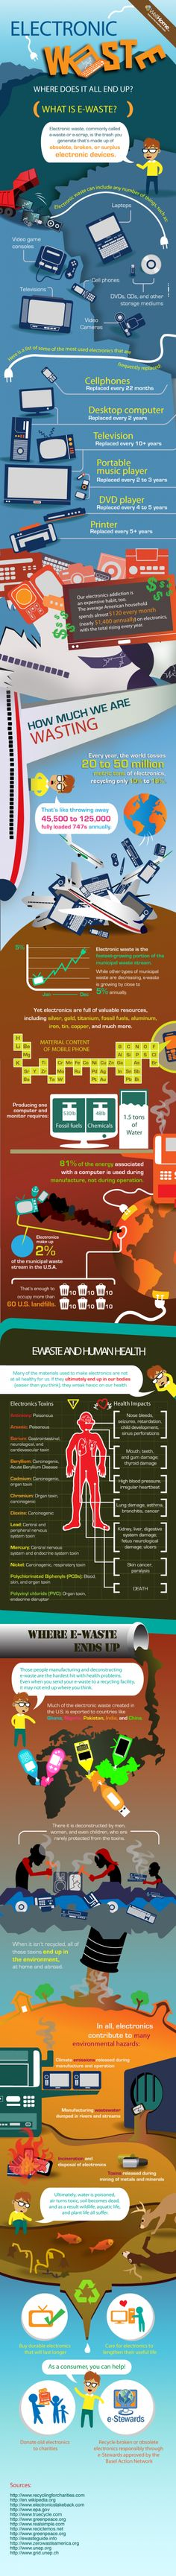 infographic about electronic waste (e-waste)